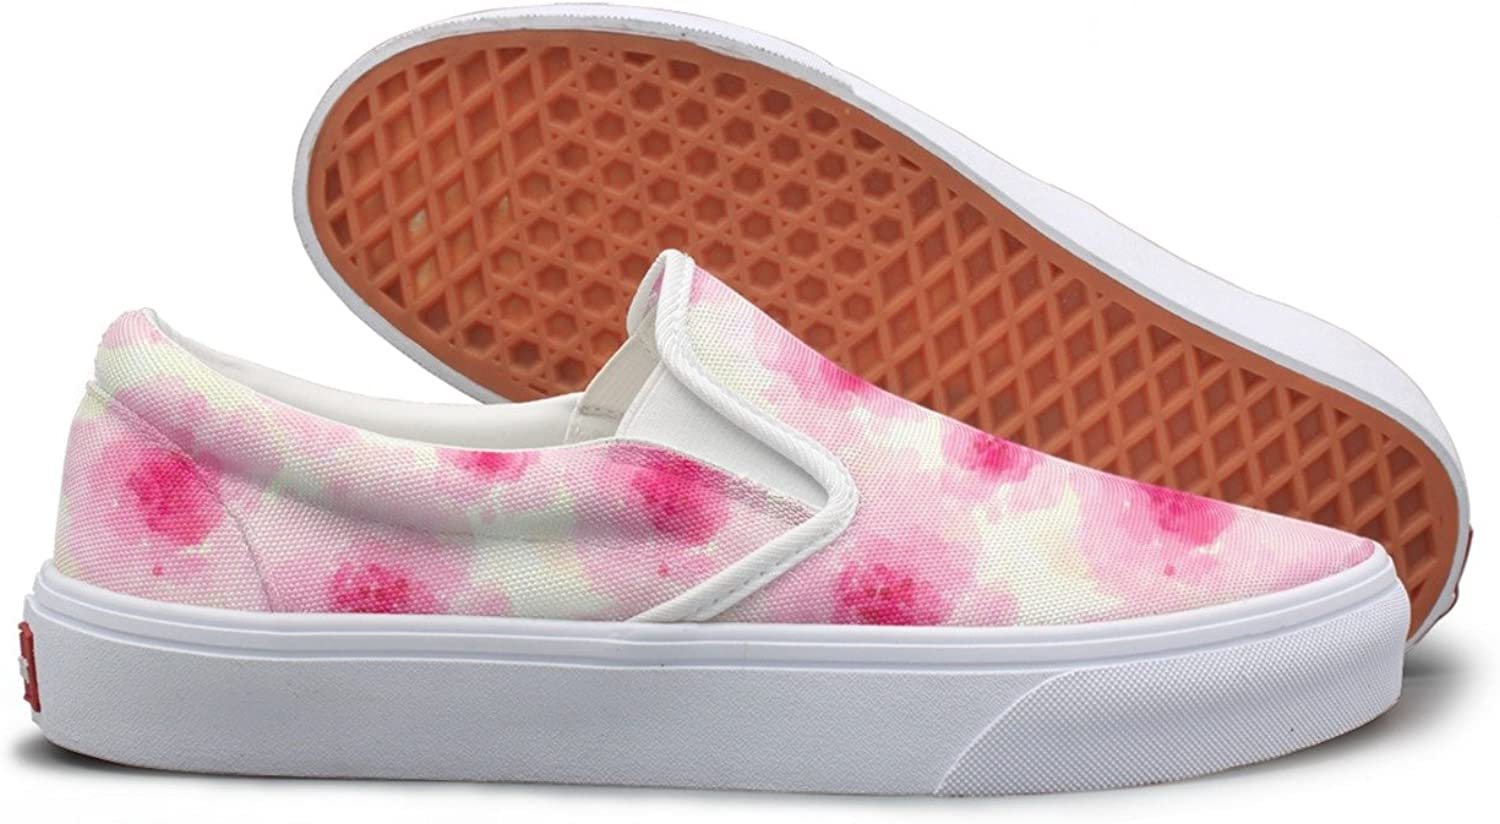 Watercolor Pink Sakura Blossom School Sneakers For Girls